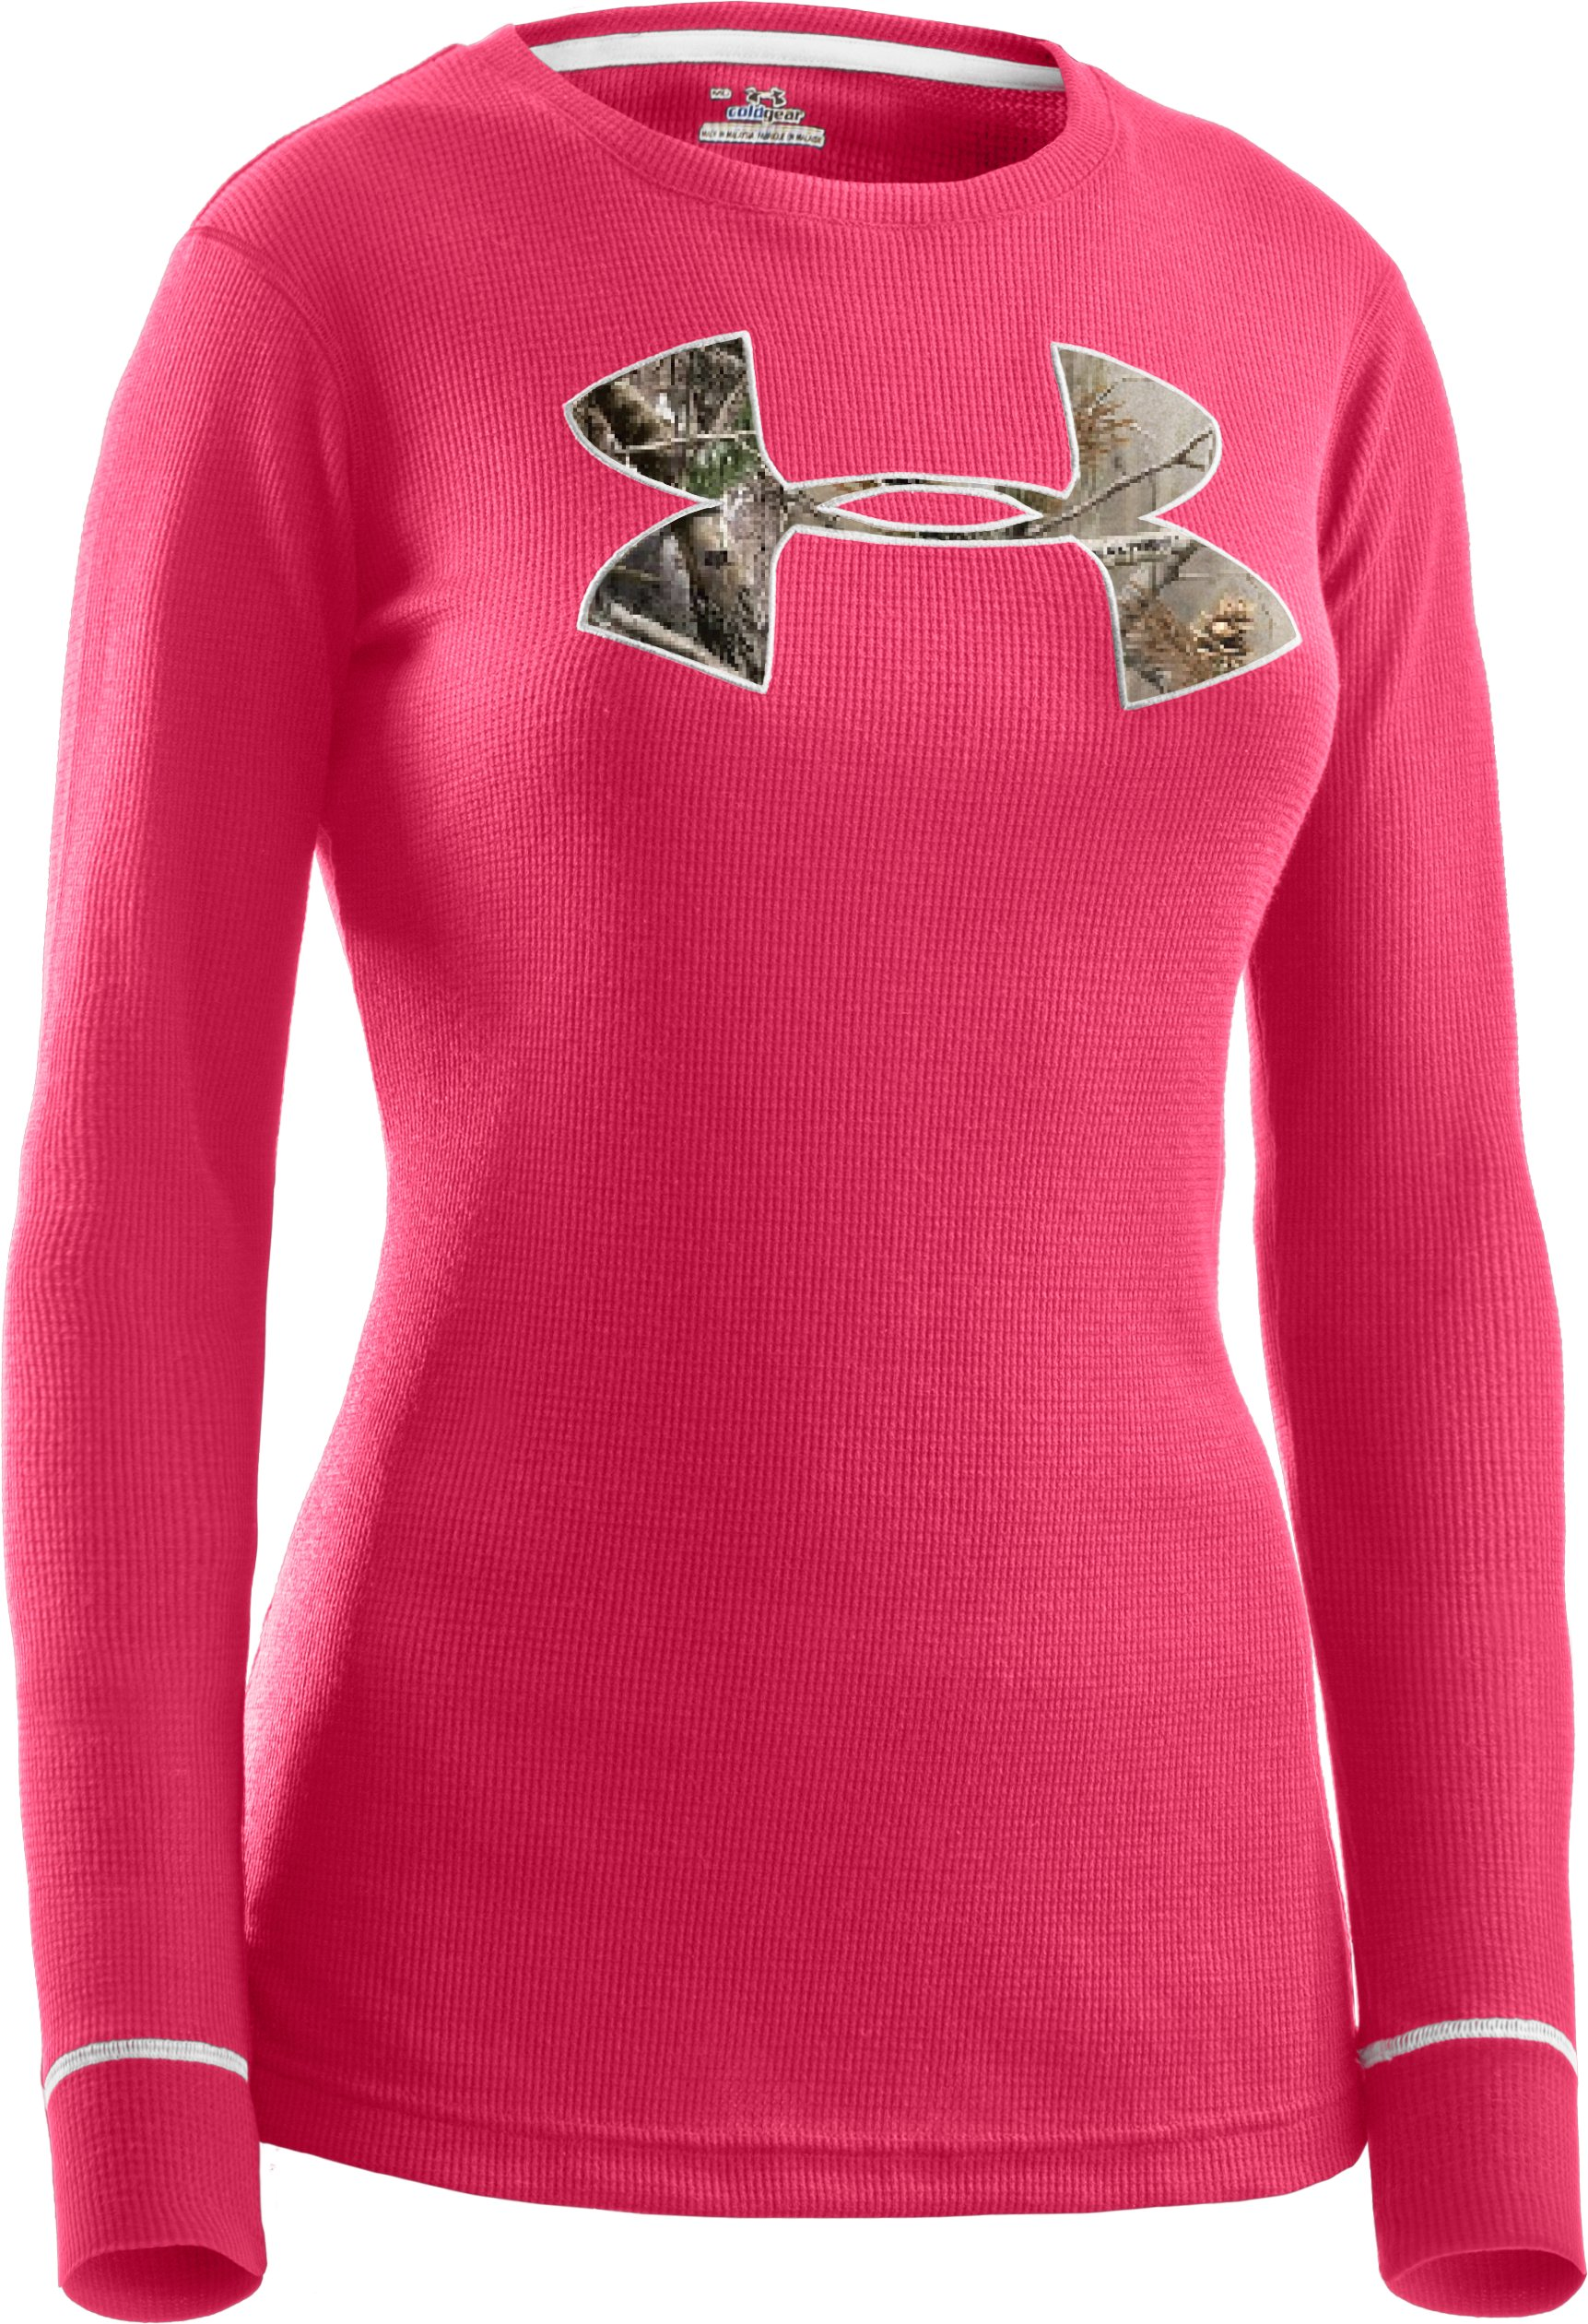 Women's Waffle Tackle Twill Long Sleeve Crew, Perfection